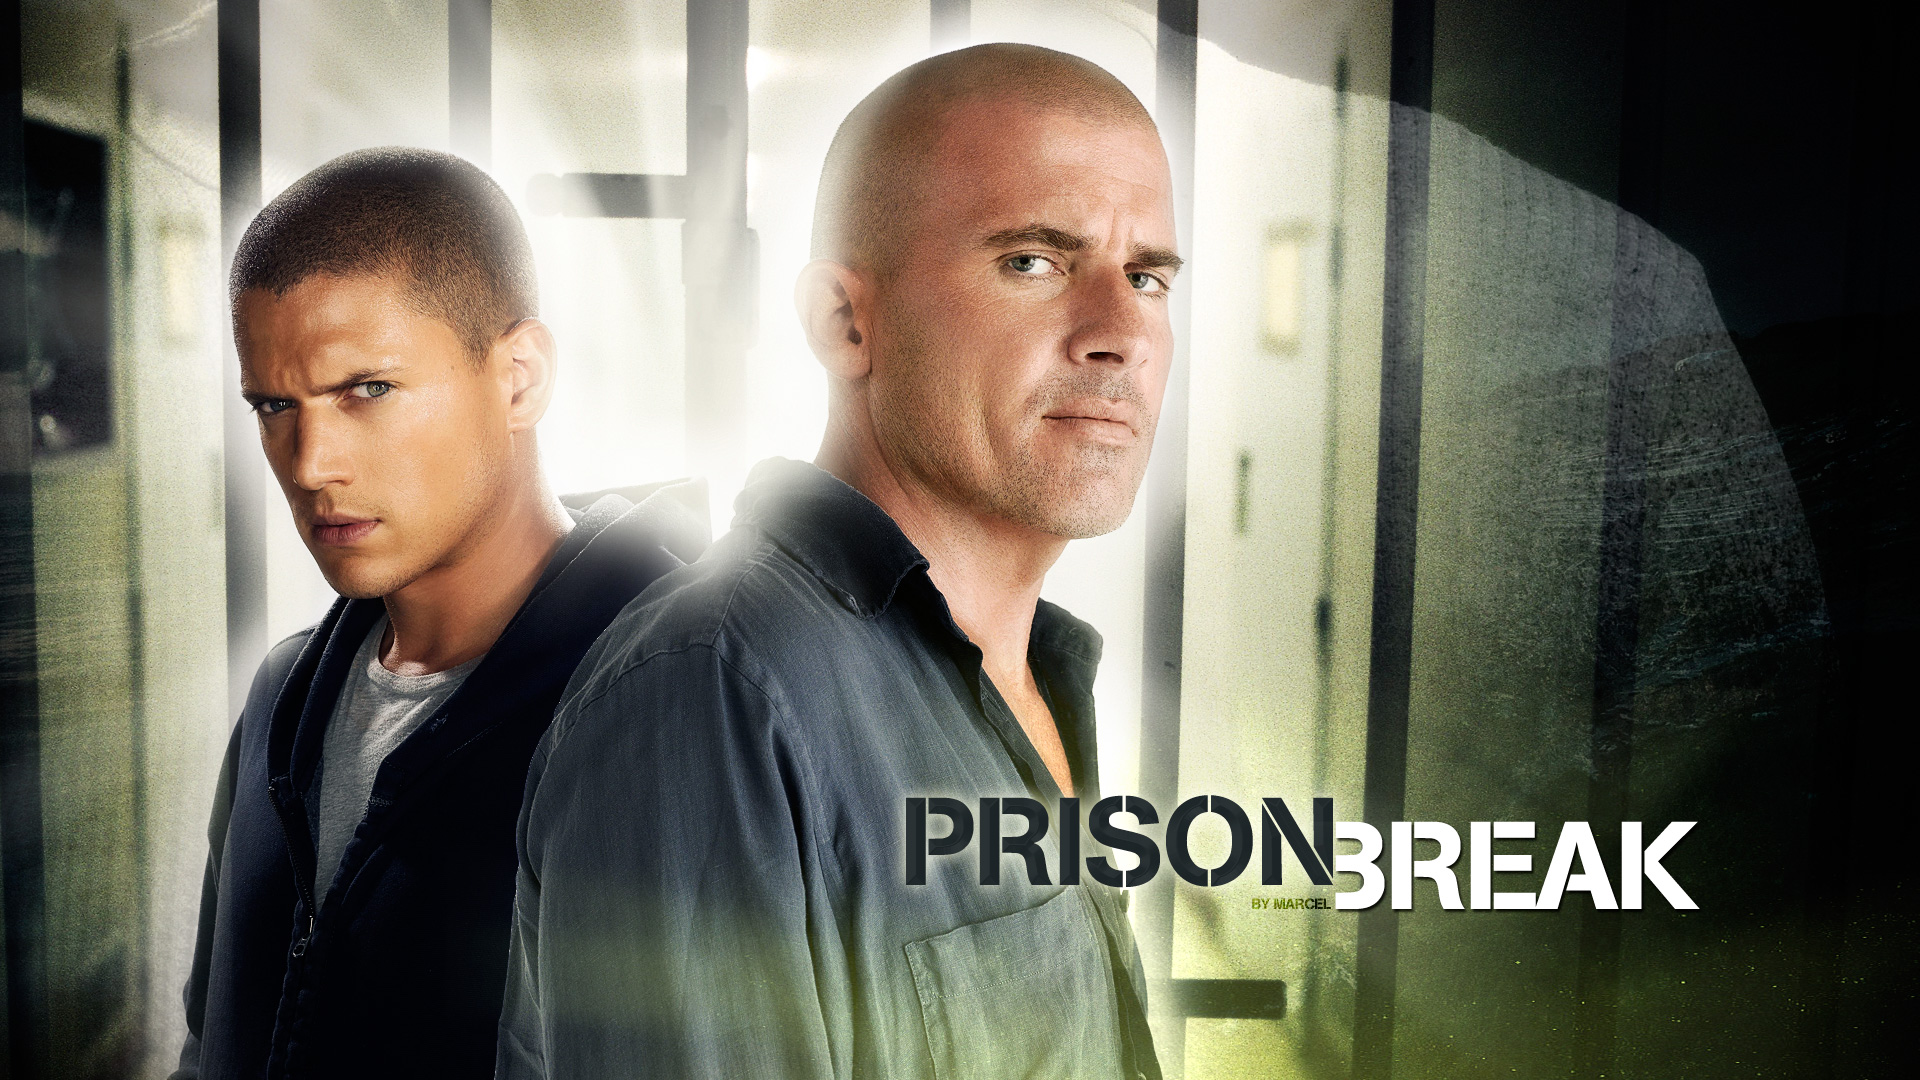 prison BREAK Prison Break Prison Break revine! prison BREAK